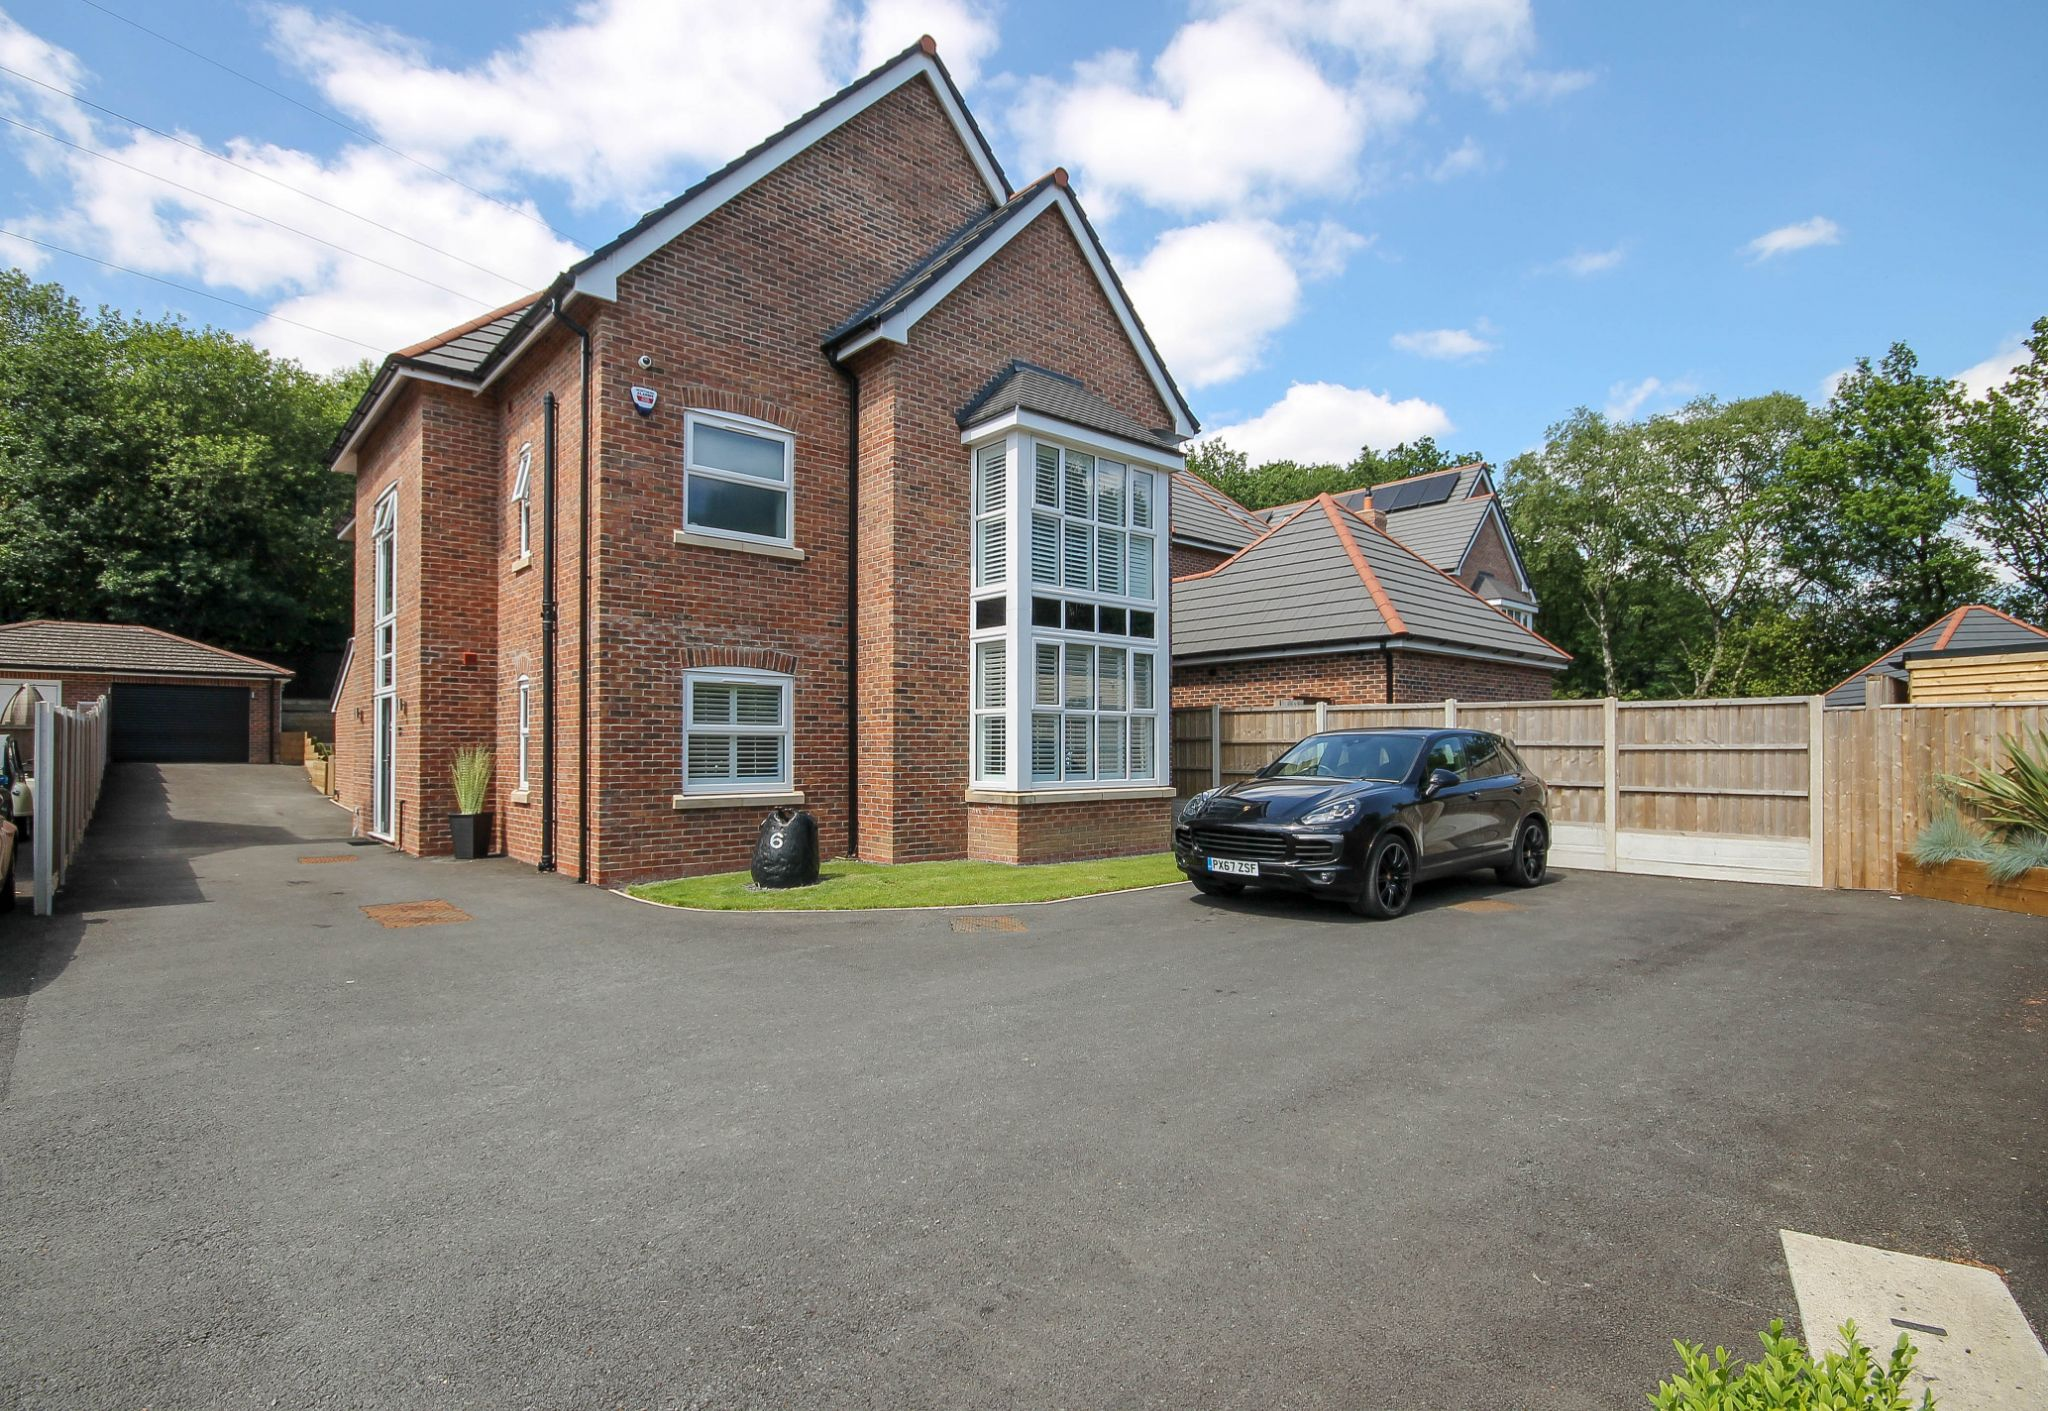 5 bedroom detached house SSTC in Bolton - Photograph 1